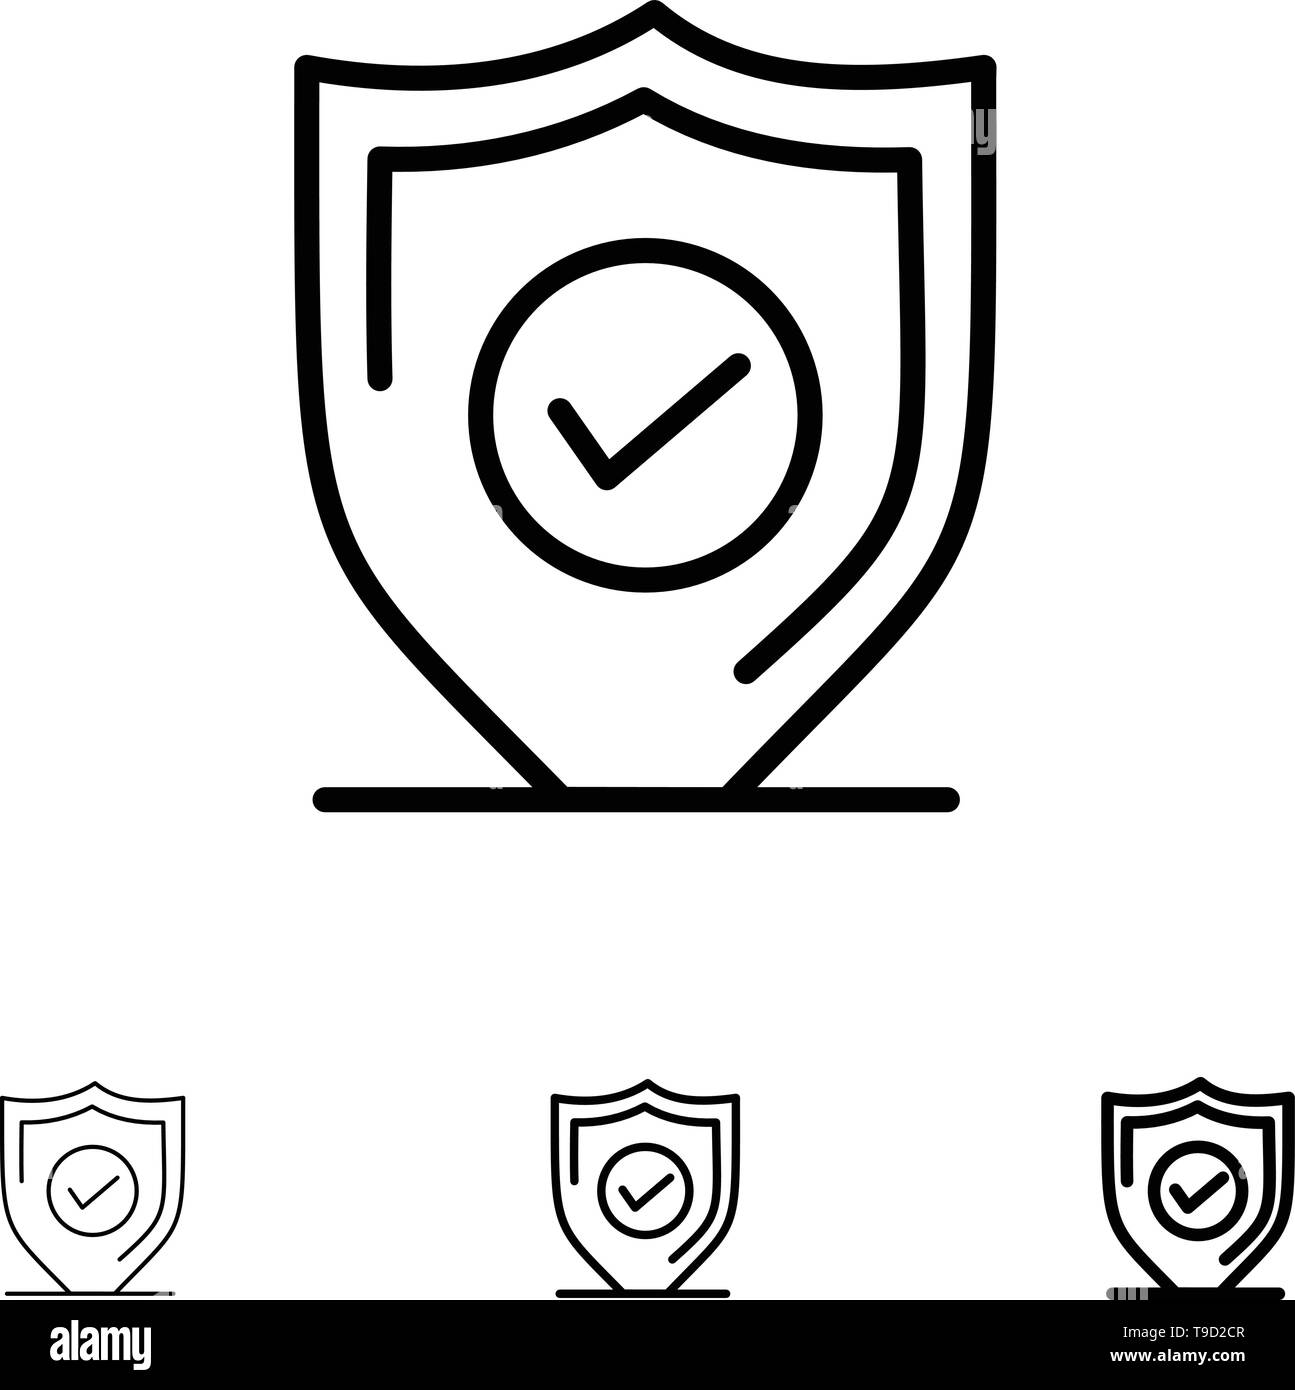 Confirm, Protection, Security, Secure Bold and thin black line icon set - Stock Image